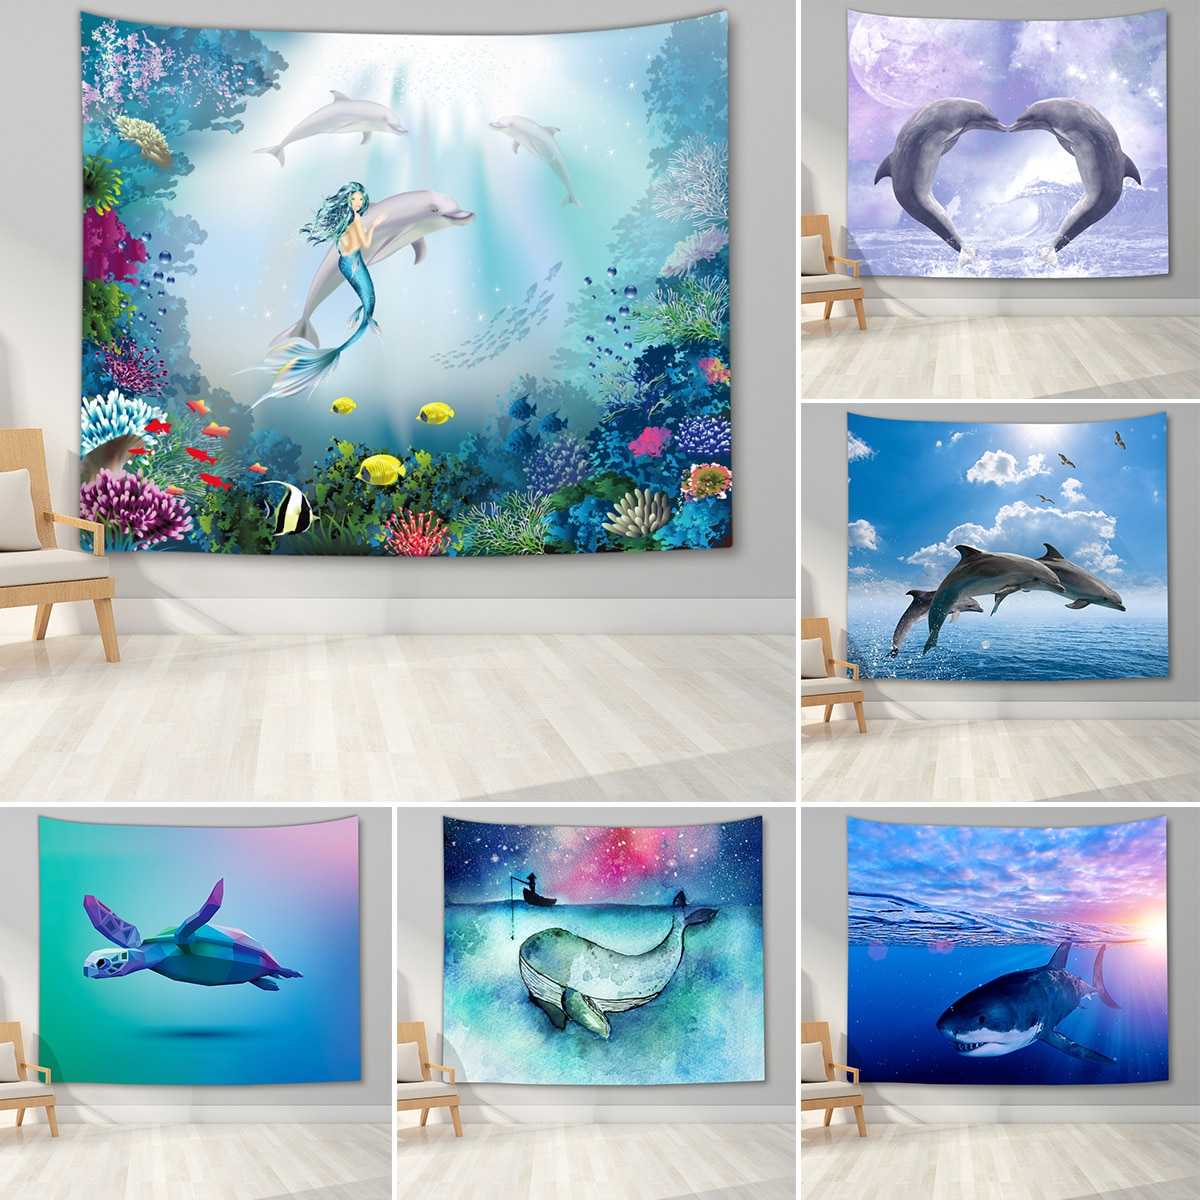 Whale Sea Turtle Azure Ocean Tapestry Fairytale Mermaid Wall Hanging Tapestry for Home Dorm Fantasy Decor Psychedelic Tapestry psychedelic brick dorm decor wall hanging tapestry